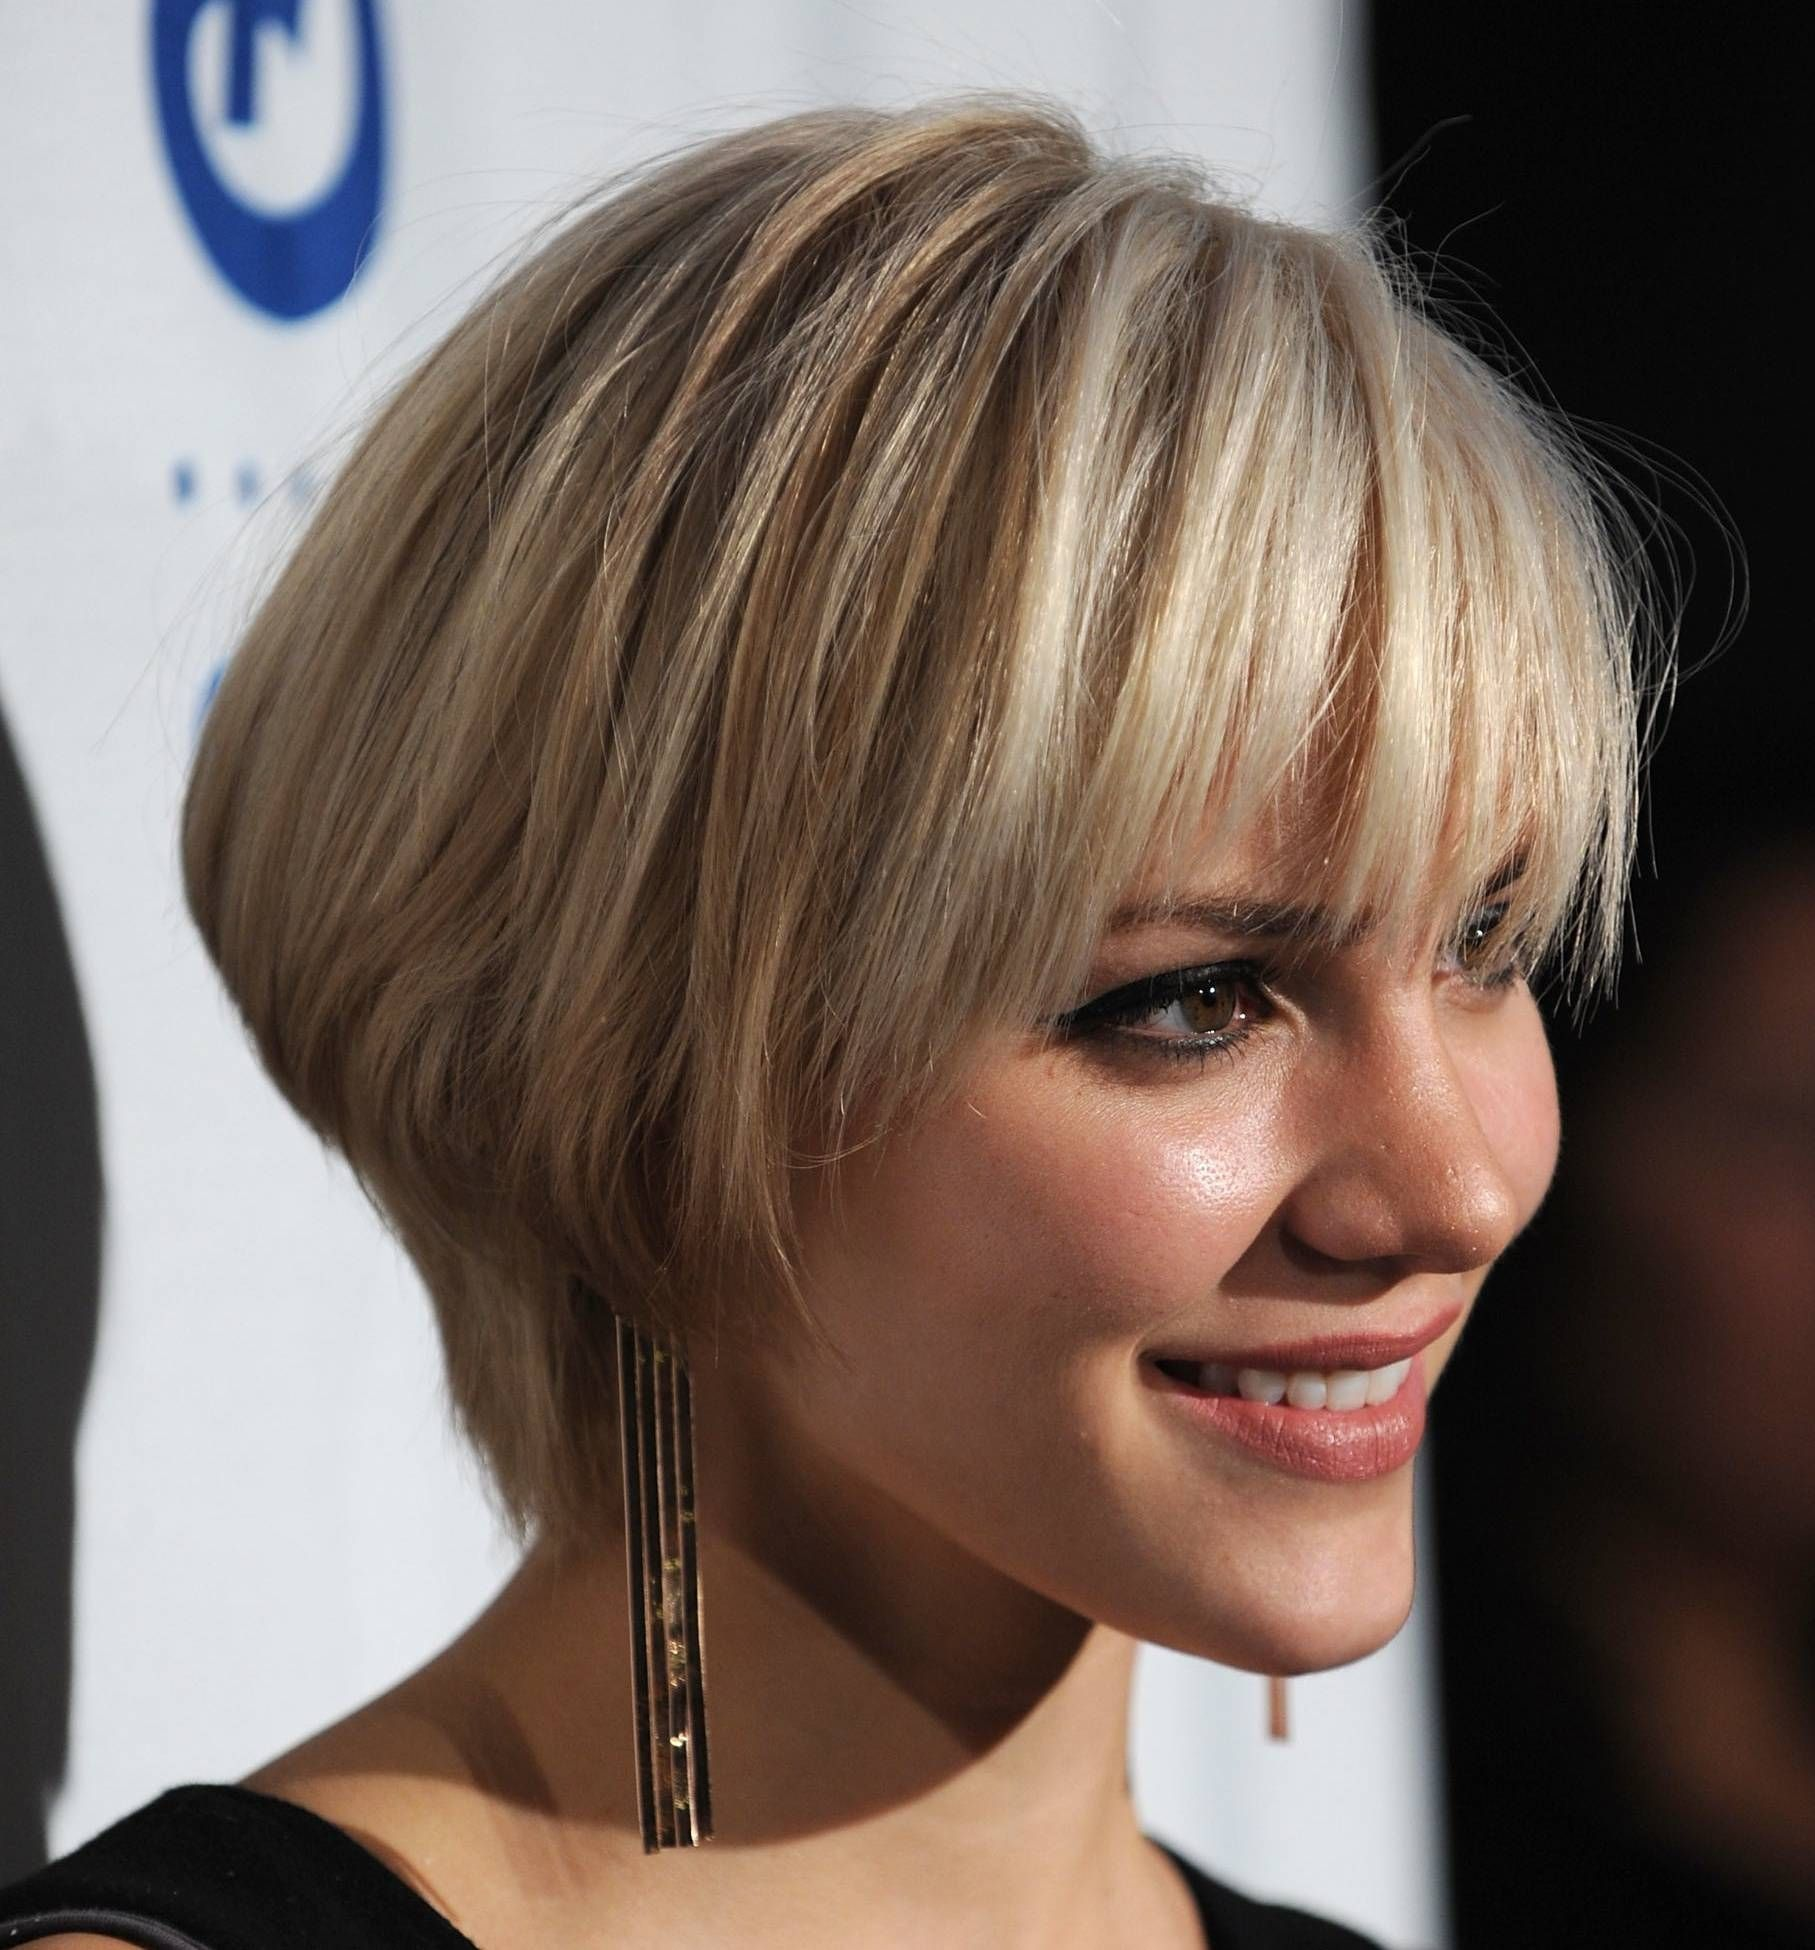 Cute short hairstyles cute short hairstyles pinterest short